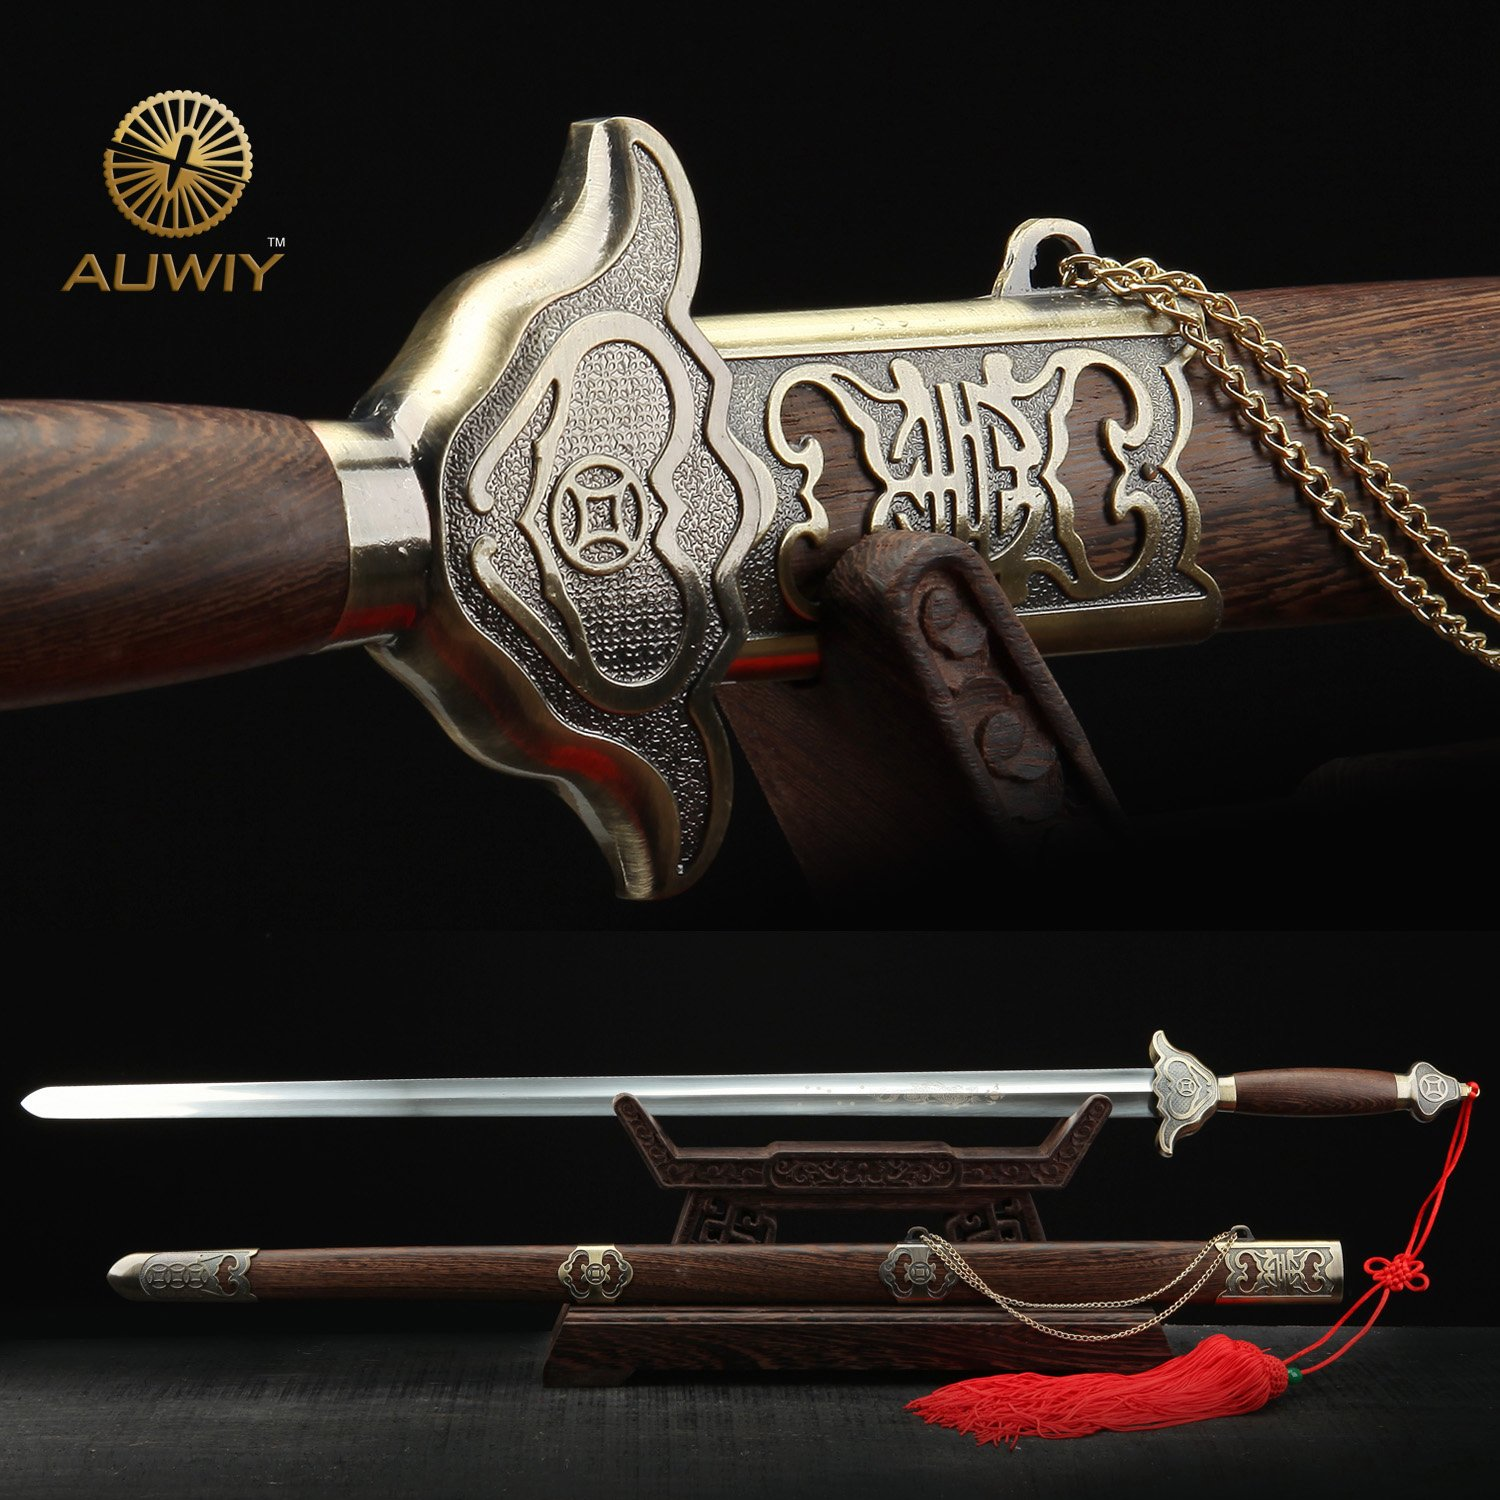 Auwiy Full Hand Forge 40 Inches Stainless Steel Chinese Swords Tai Chi Practice Sword by Auwiy